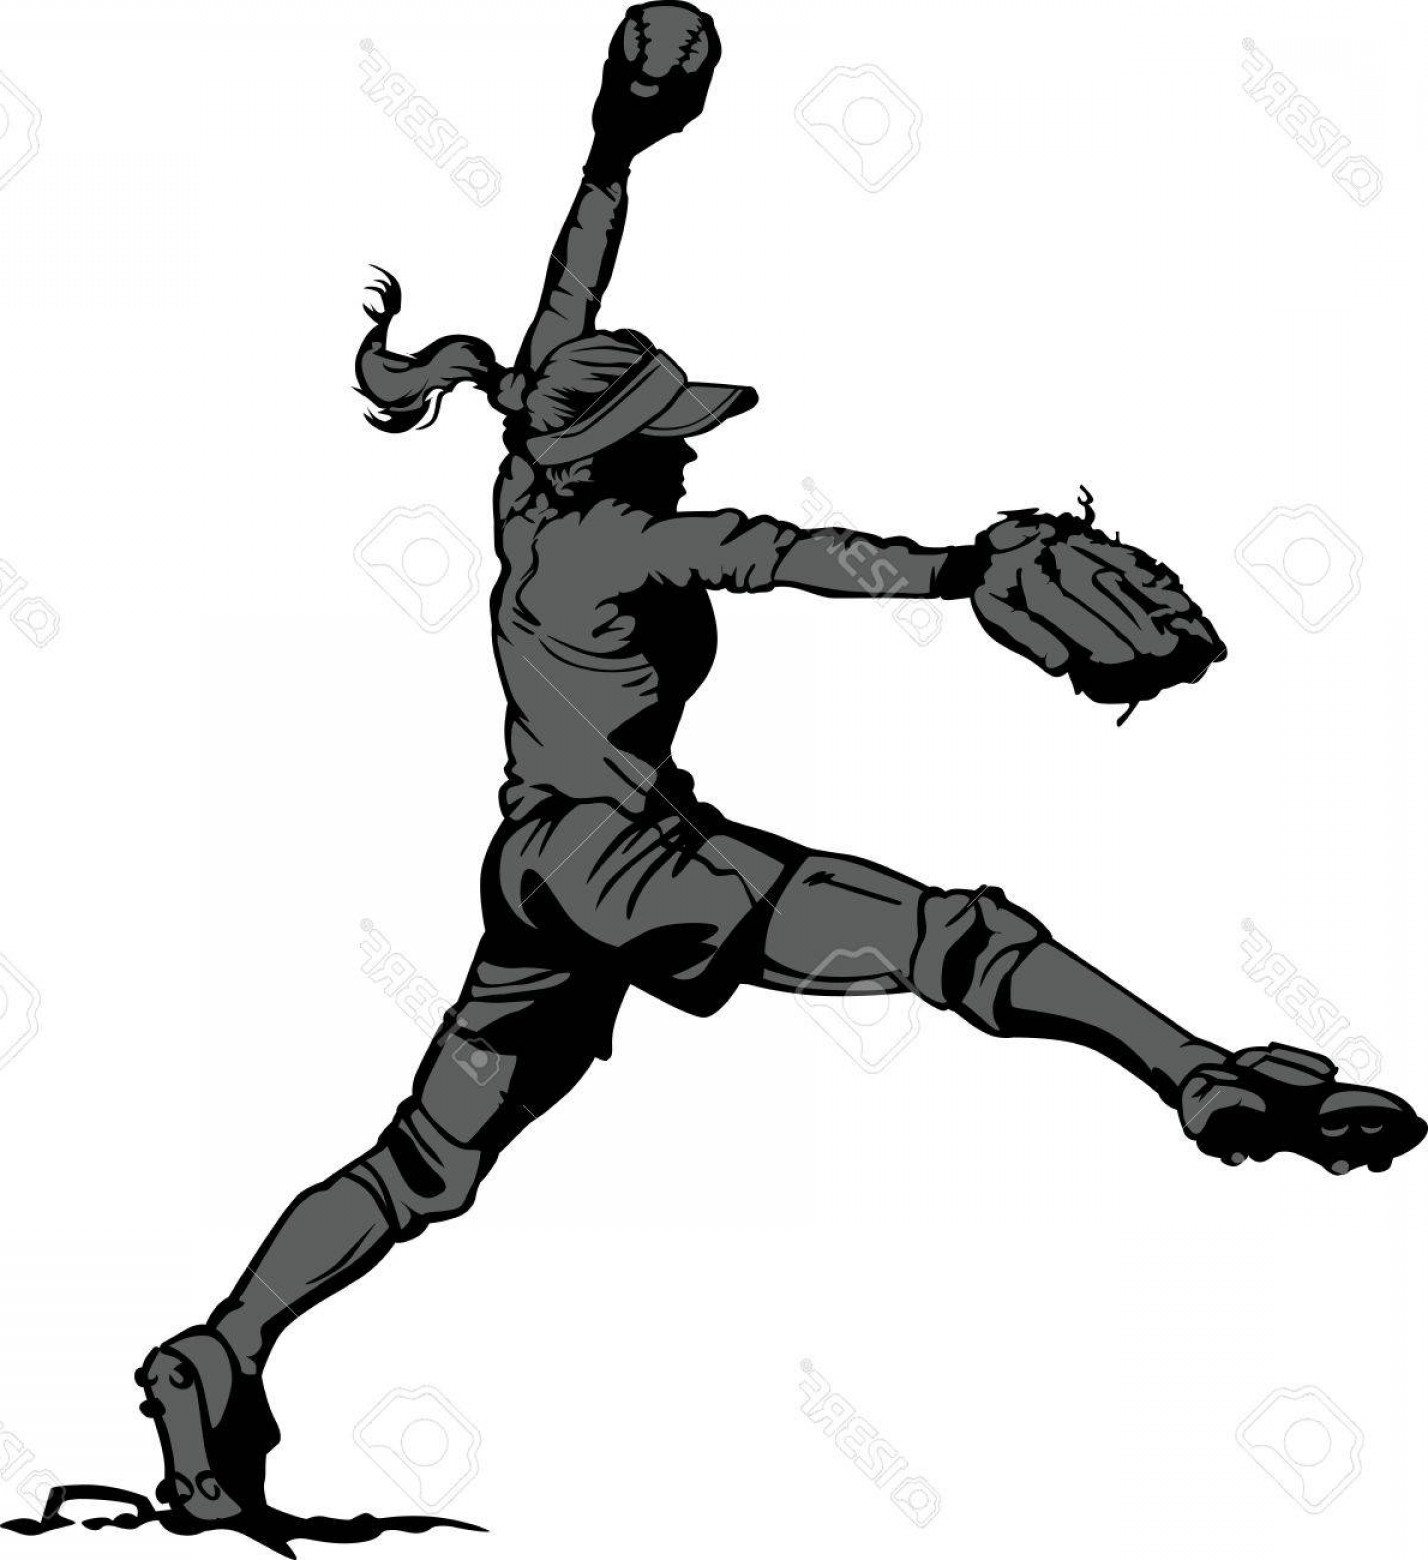 Photovector Illustration Silhouette Of A Fastpitch Softball.